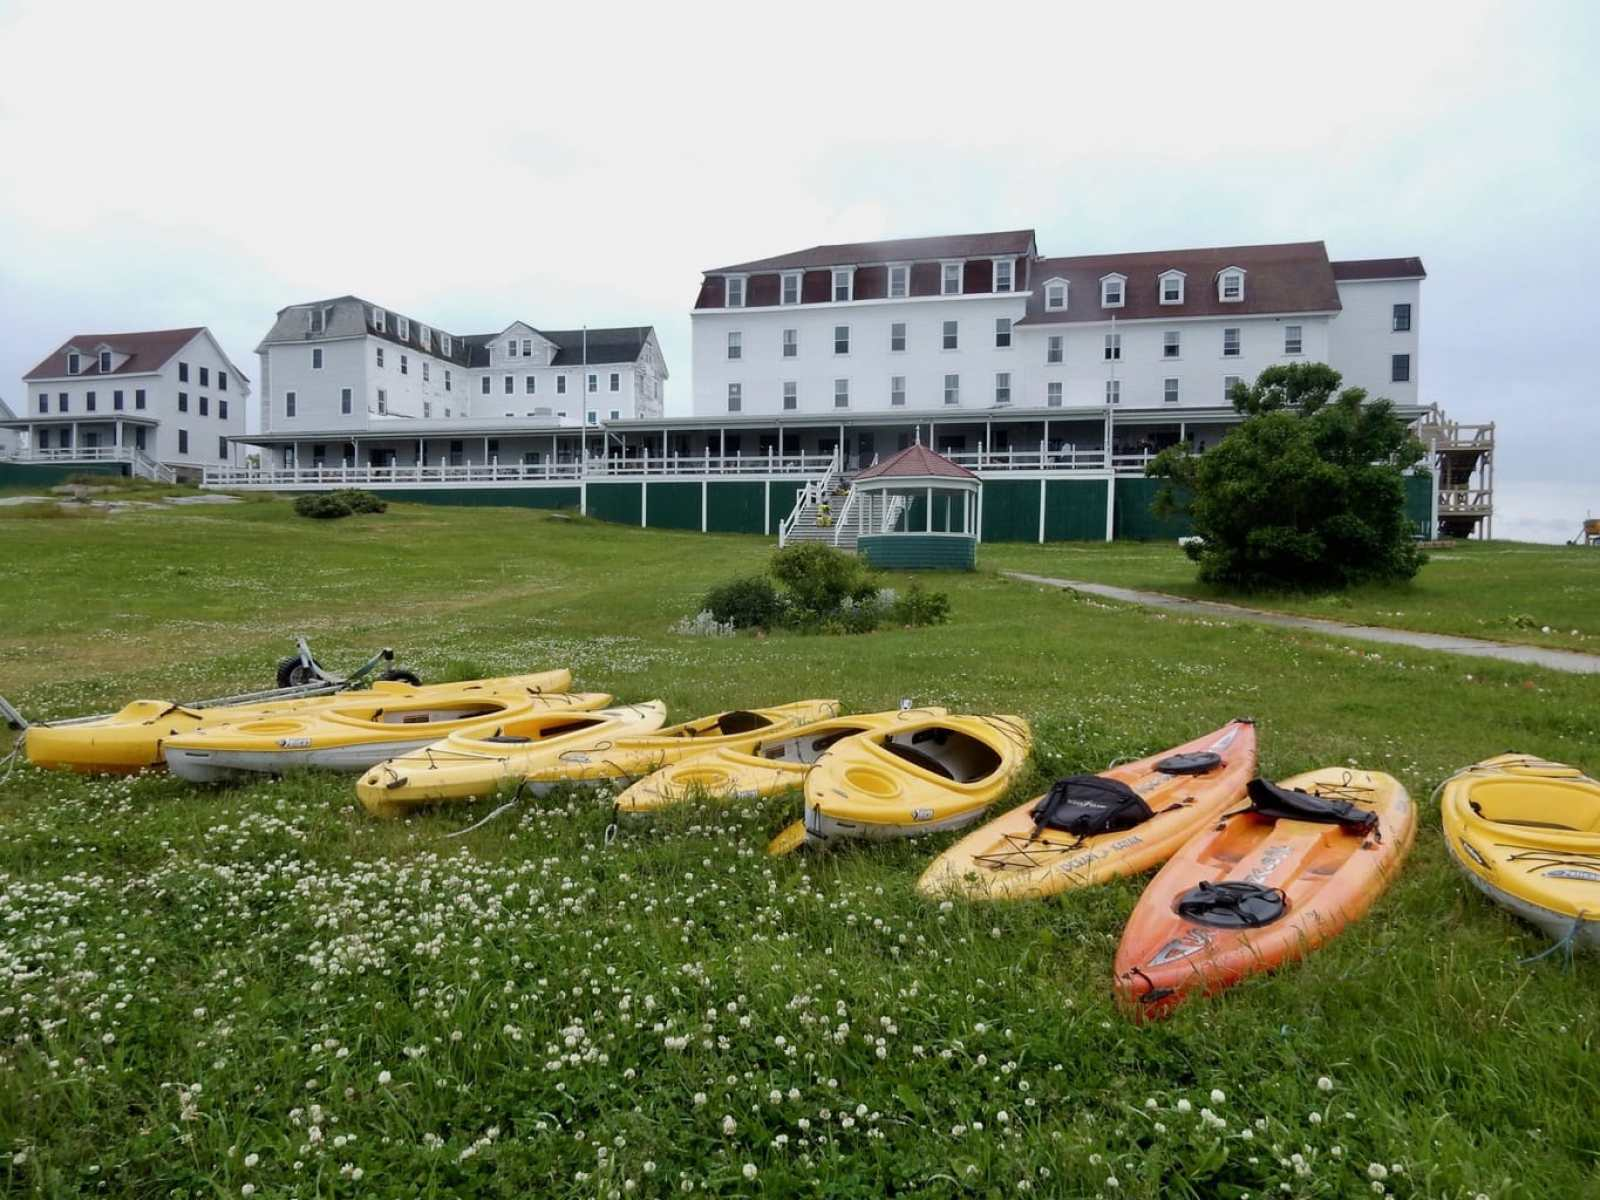 Oceanic Hotel, Star Island Isle of Shoals NH